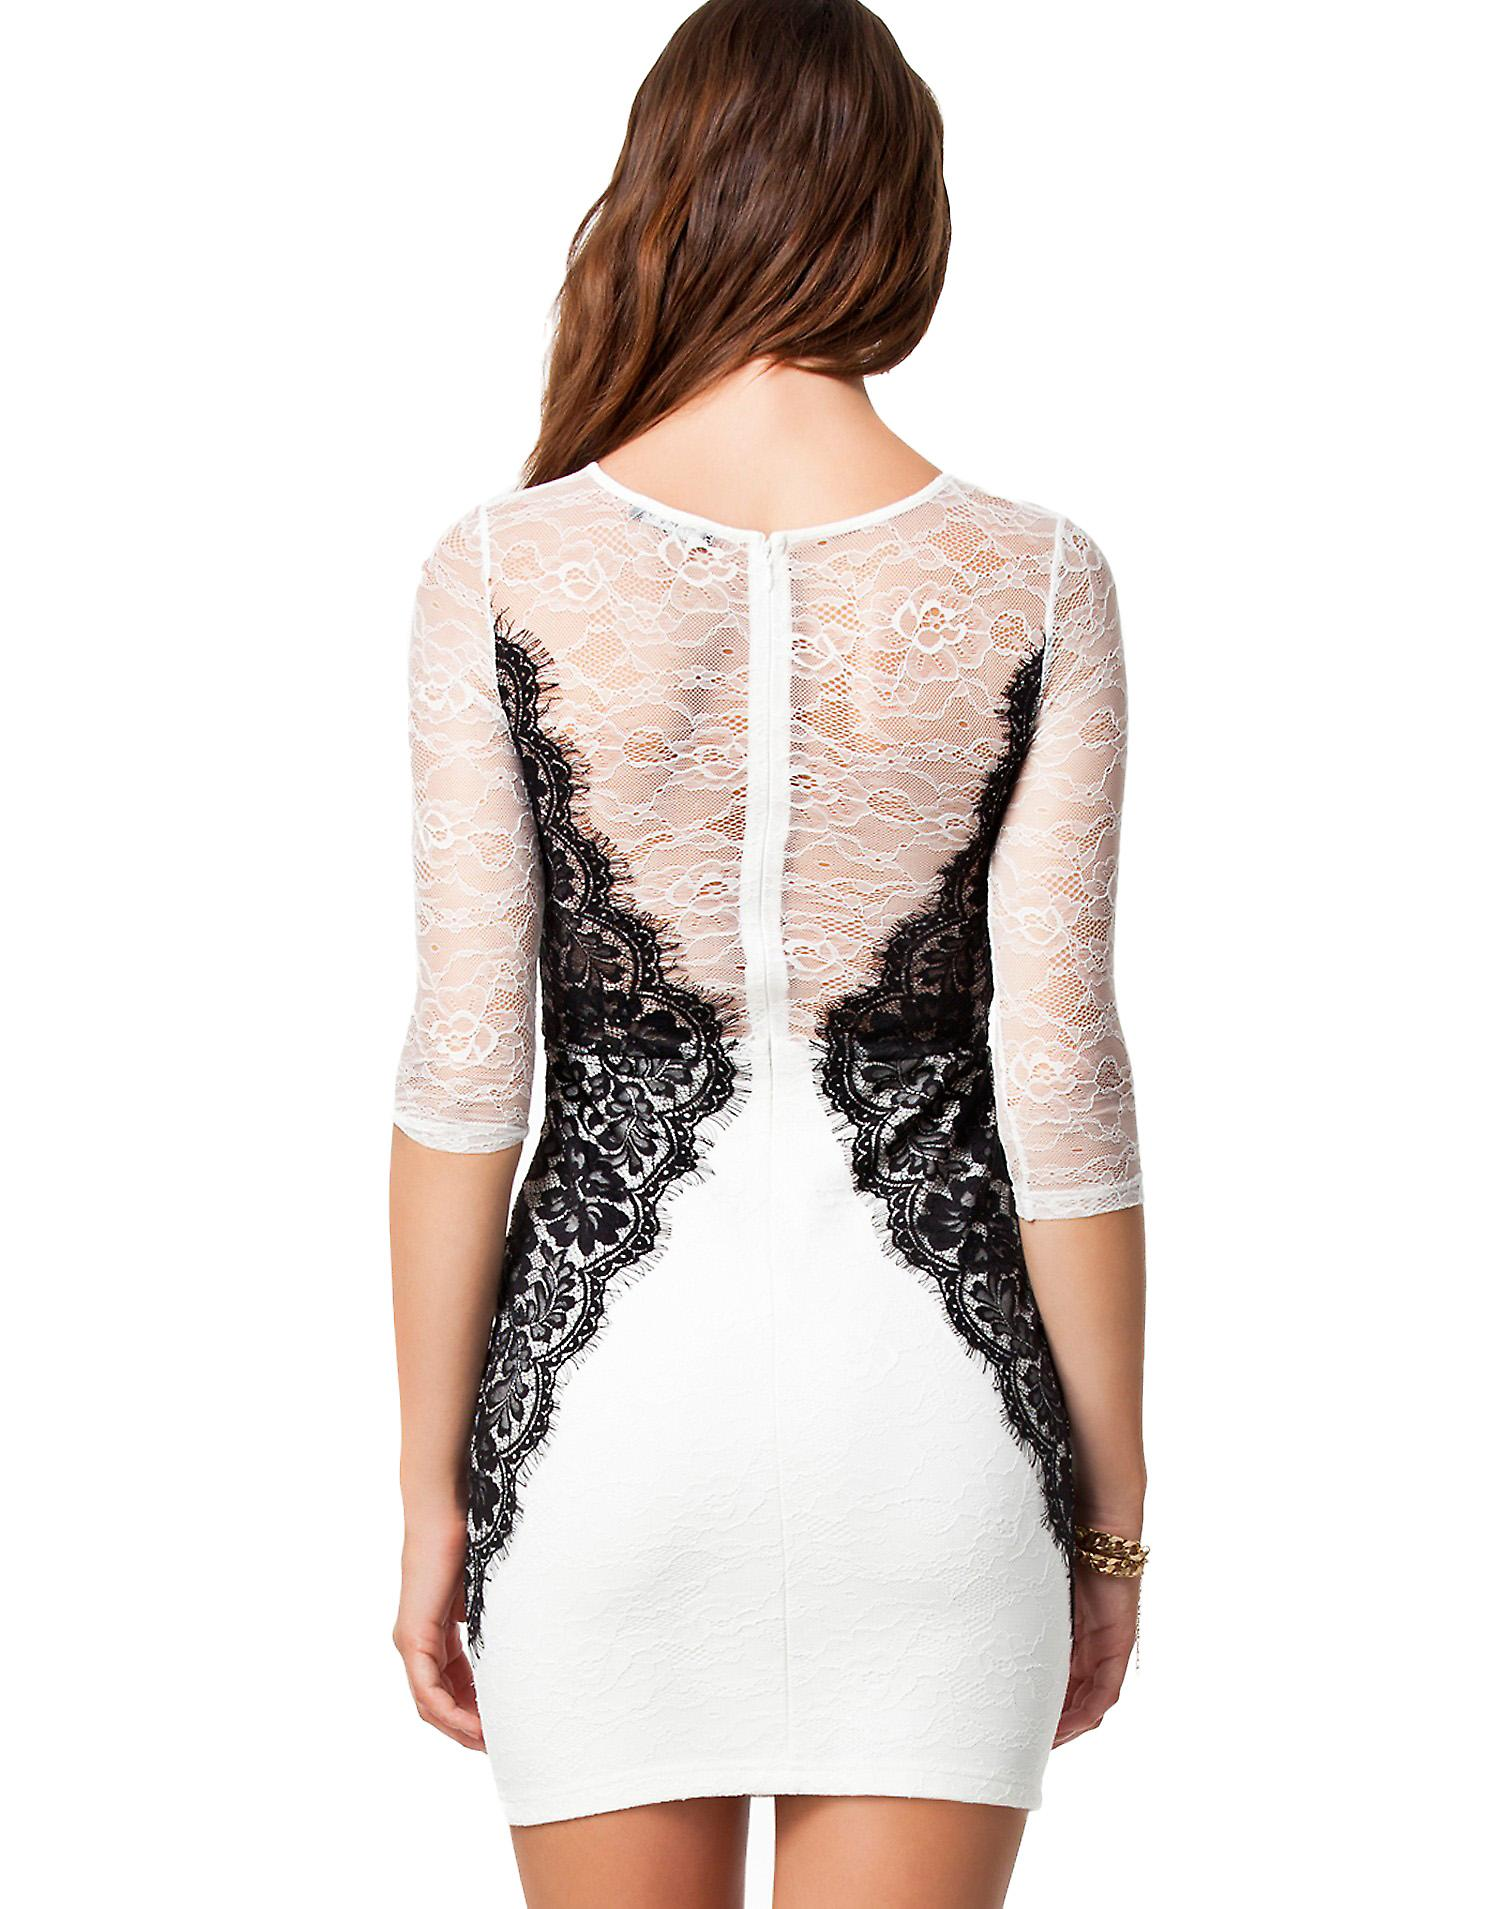 Waooh - Fashion - Dress semi transparent lace